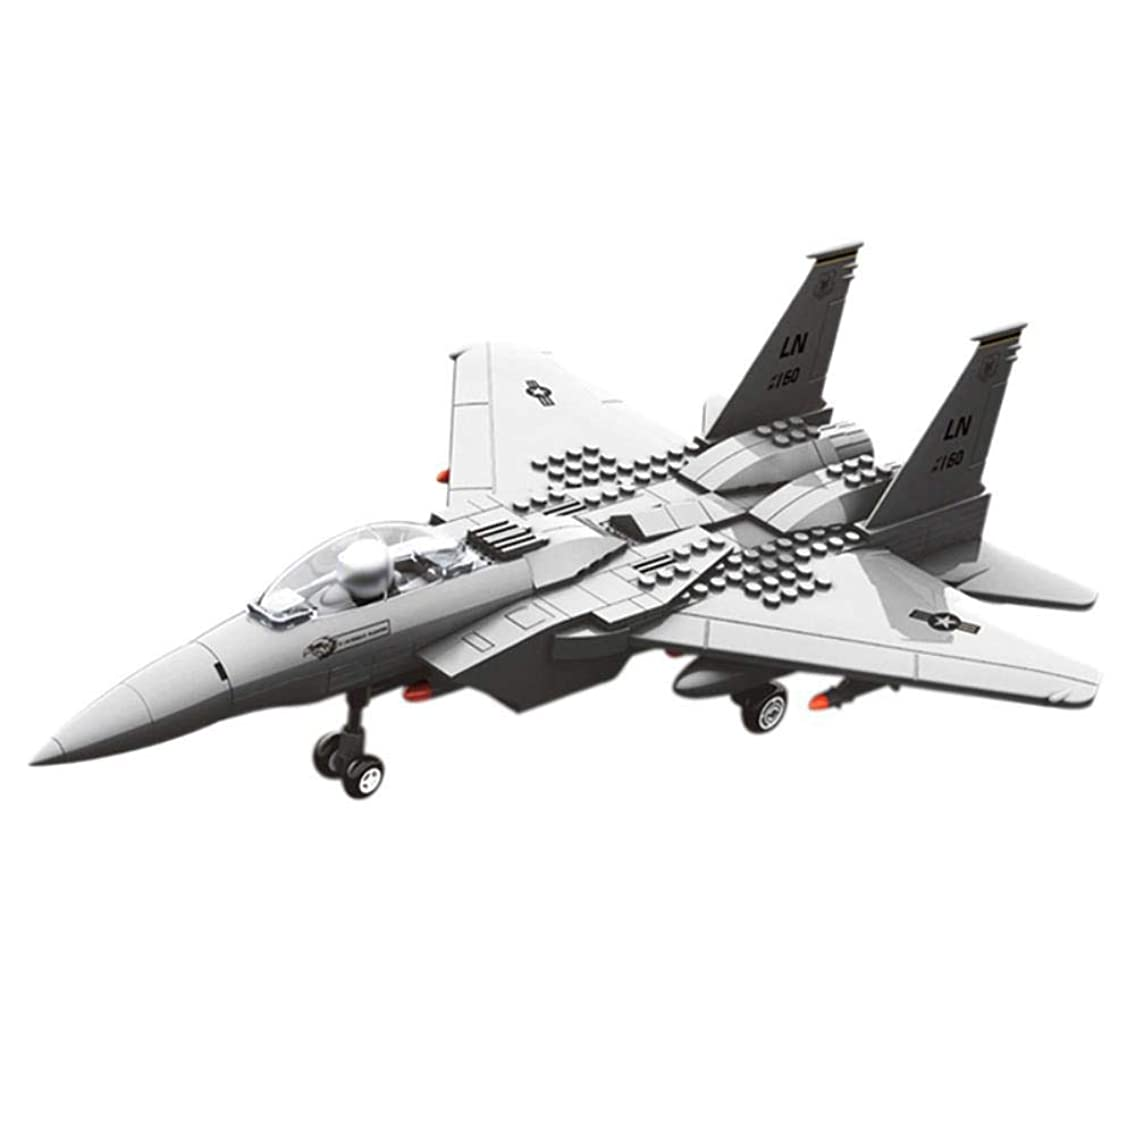 HJRHH-R Jx005 F15 Eagle Fighter Military Helicopter Building Blocks DIY Plane Bricks Educational Toys Compatible with